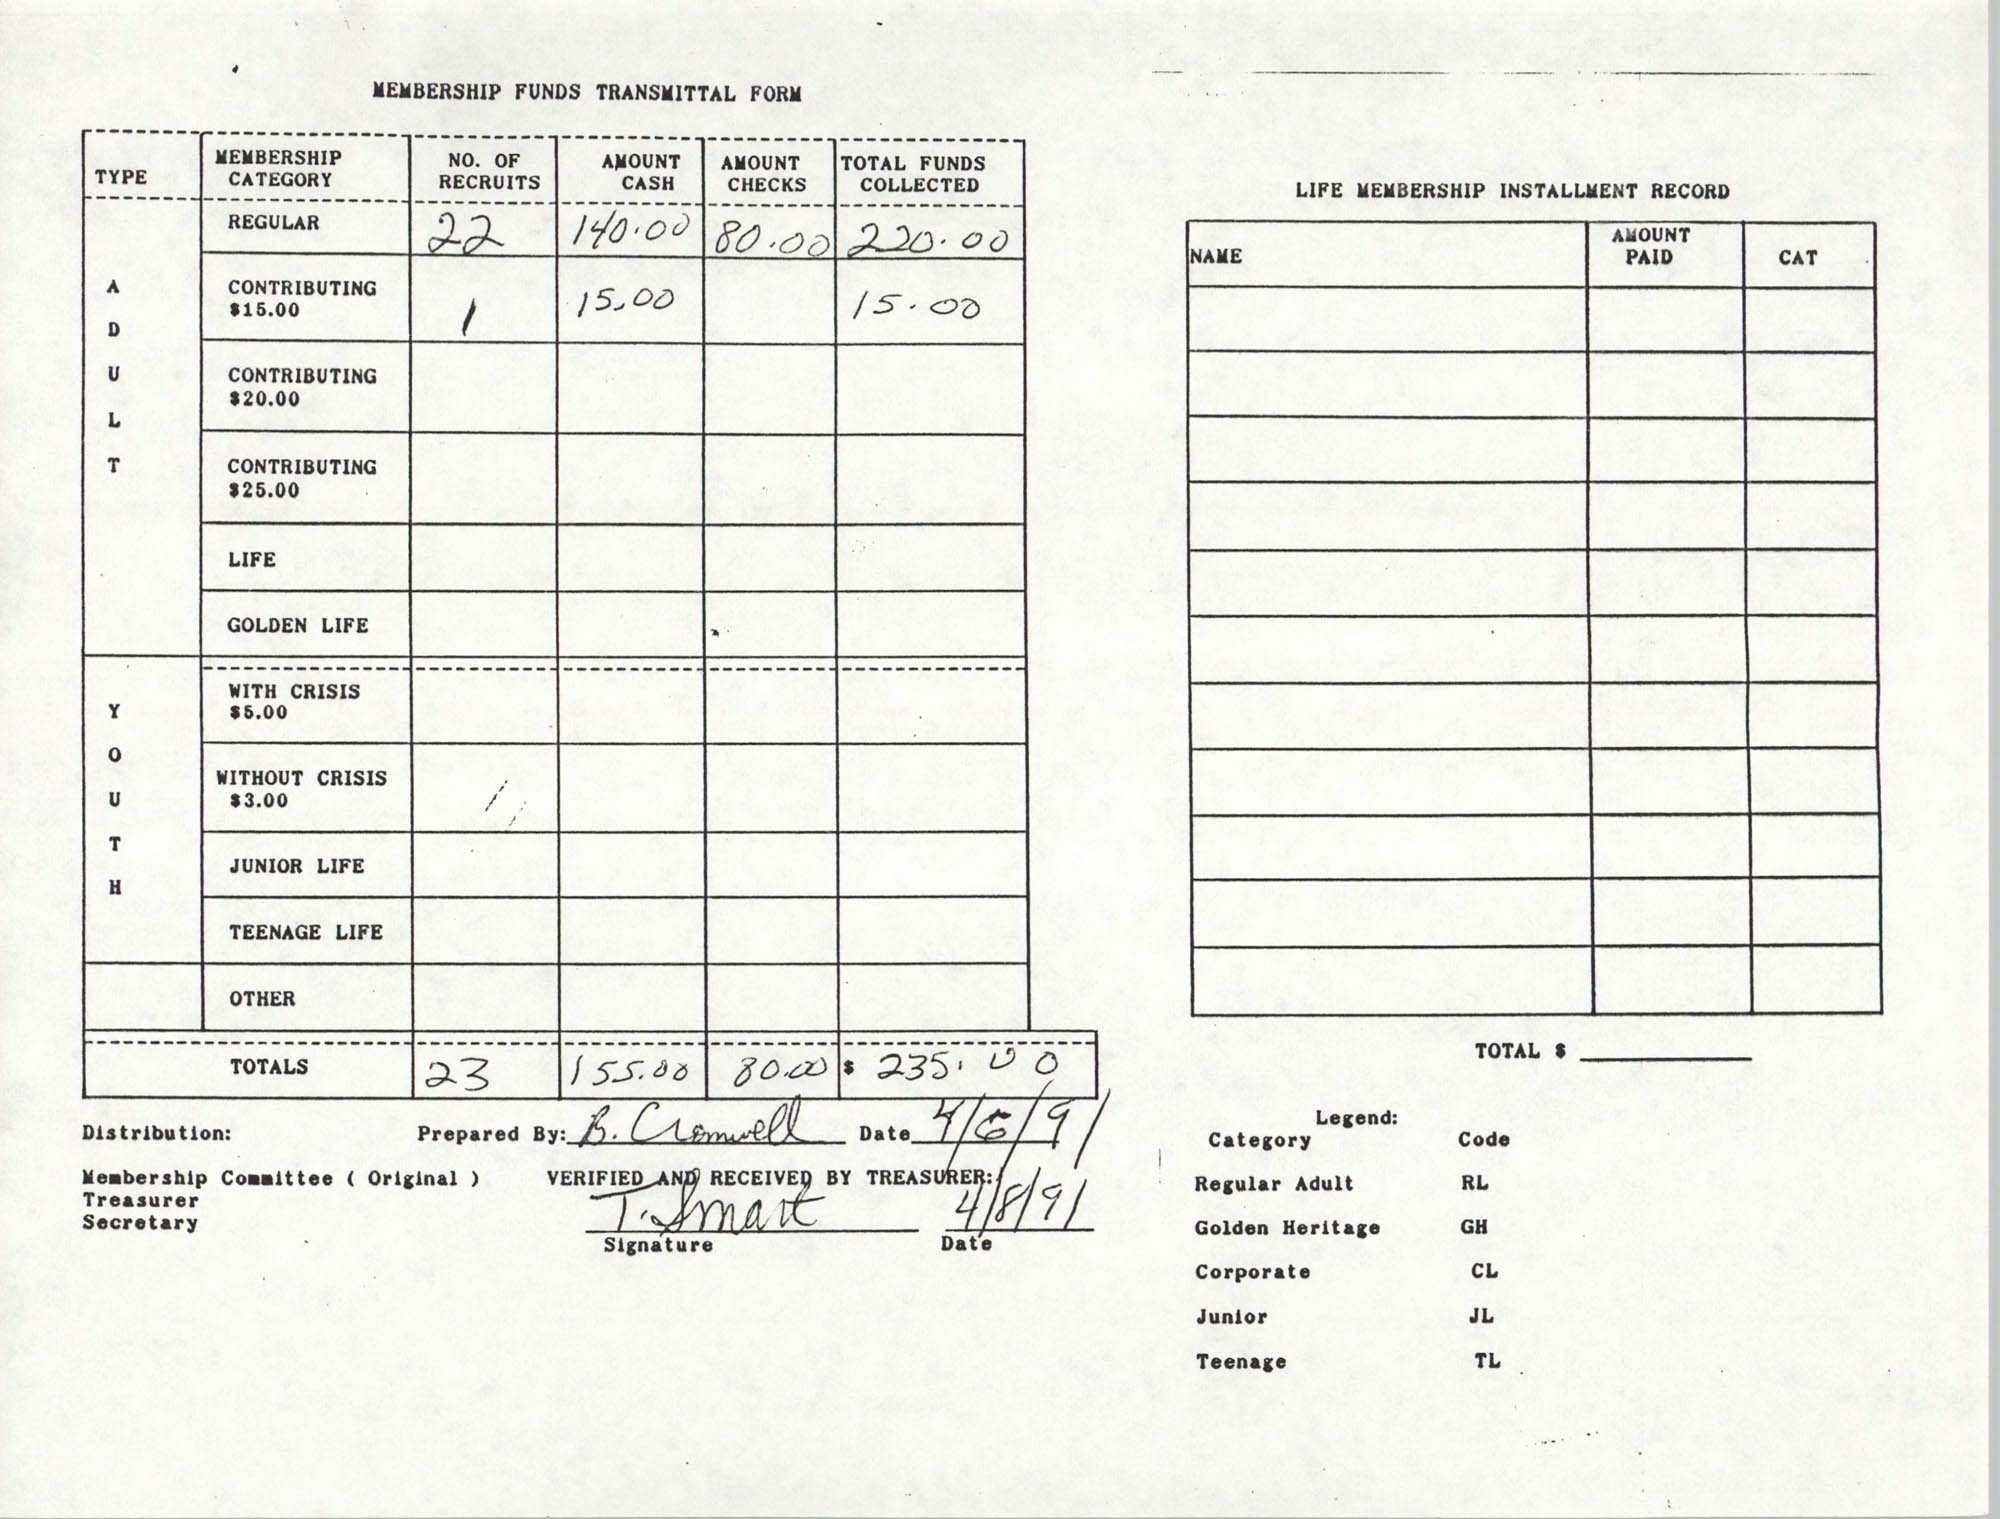 Charleston Branch of the NAACP Funds Transmittal Forms, April 1991, Page 1